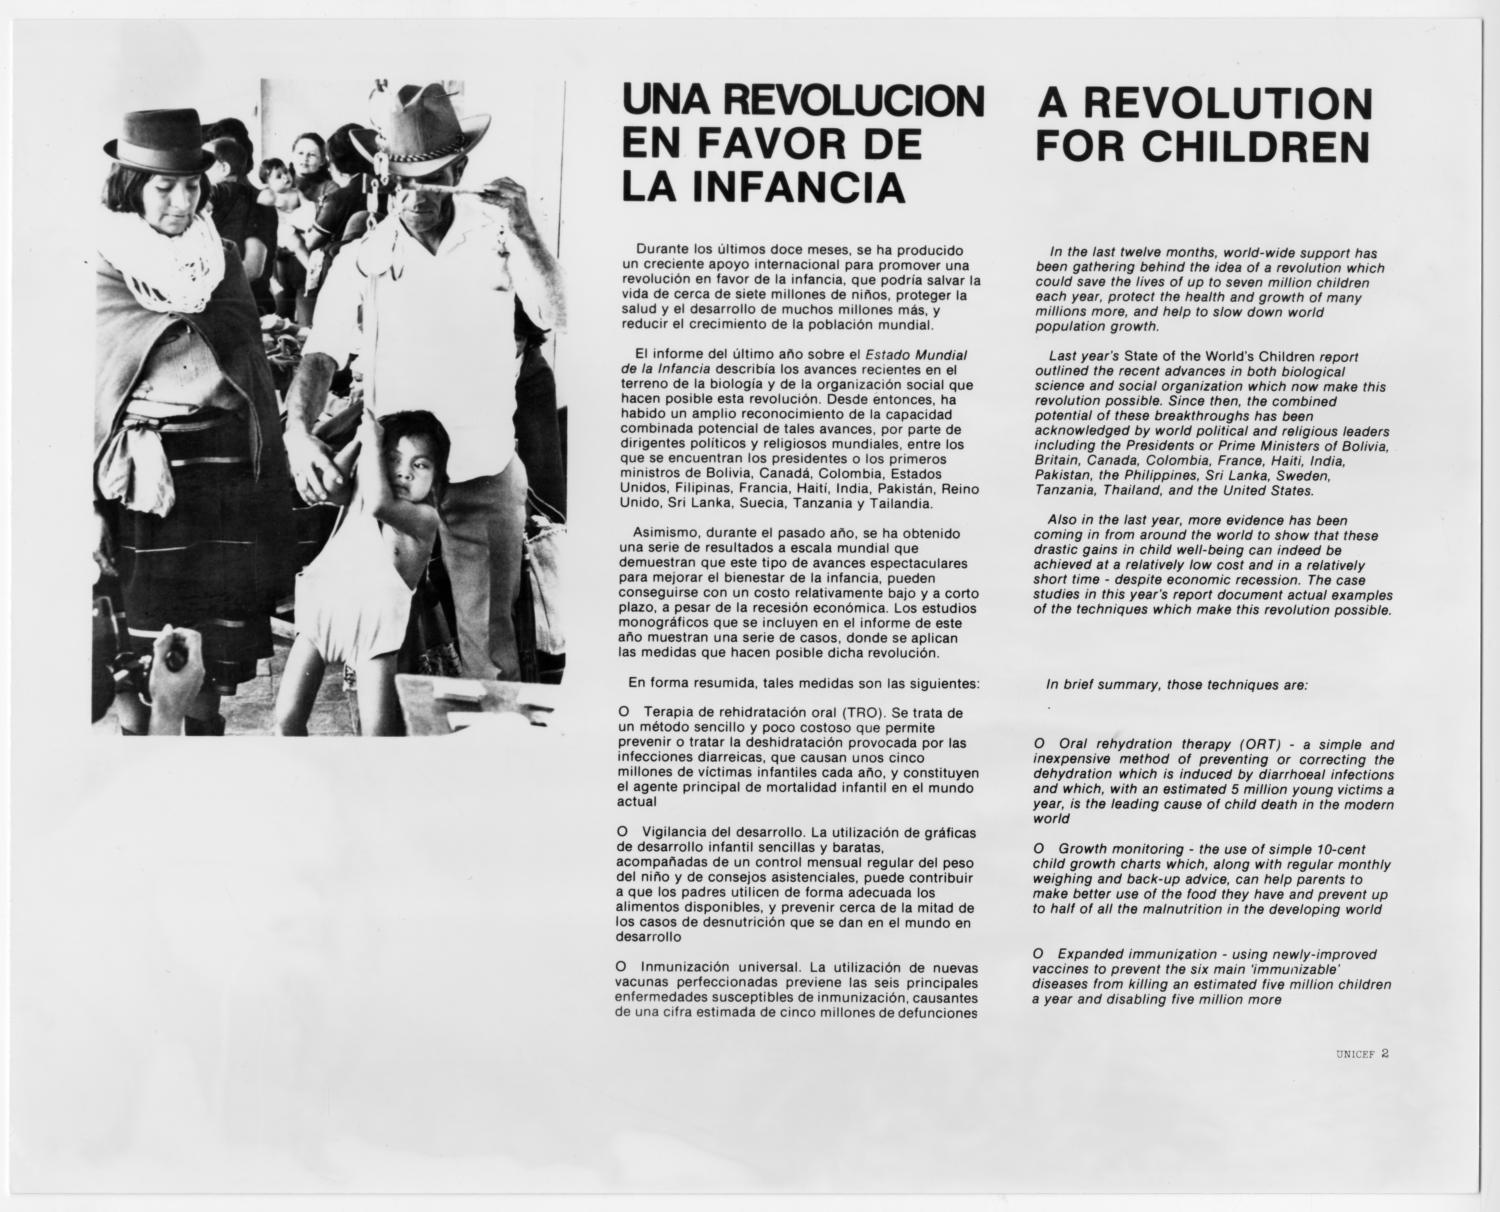 Una revolucion en favor de la infancia                                                                                                      [Sequence #]: 1 of 2